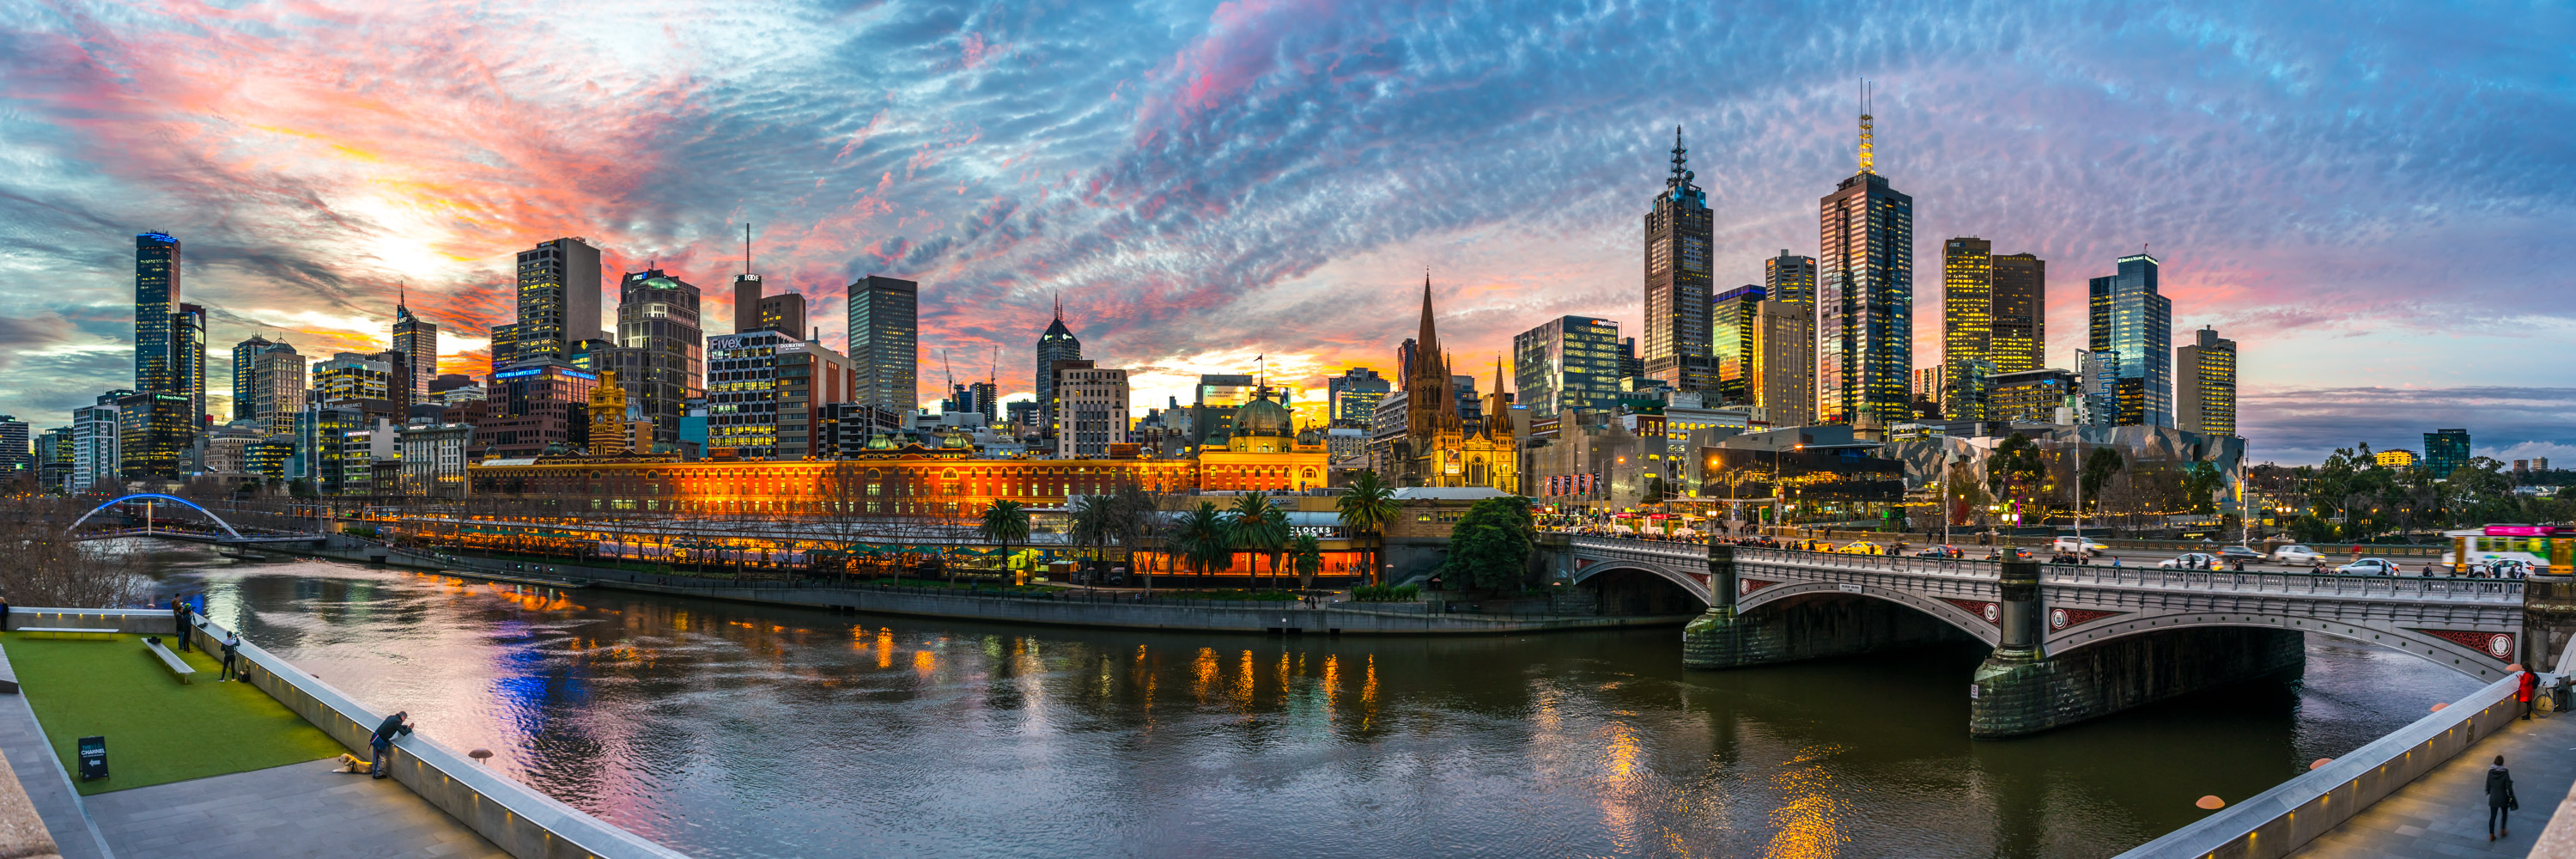 Panoramic Melbourne at its Best | Steven Wright